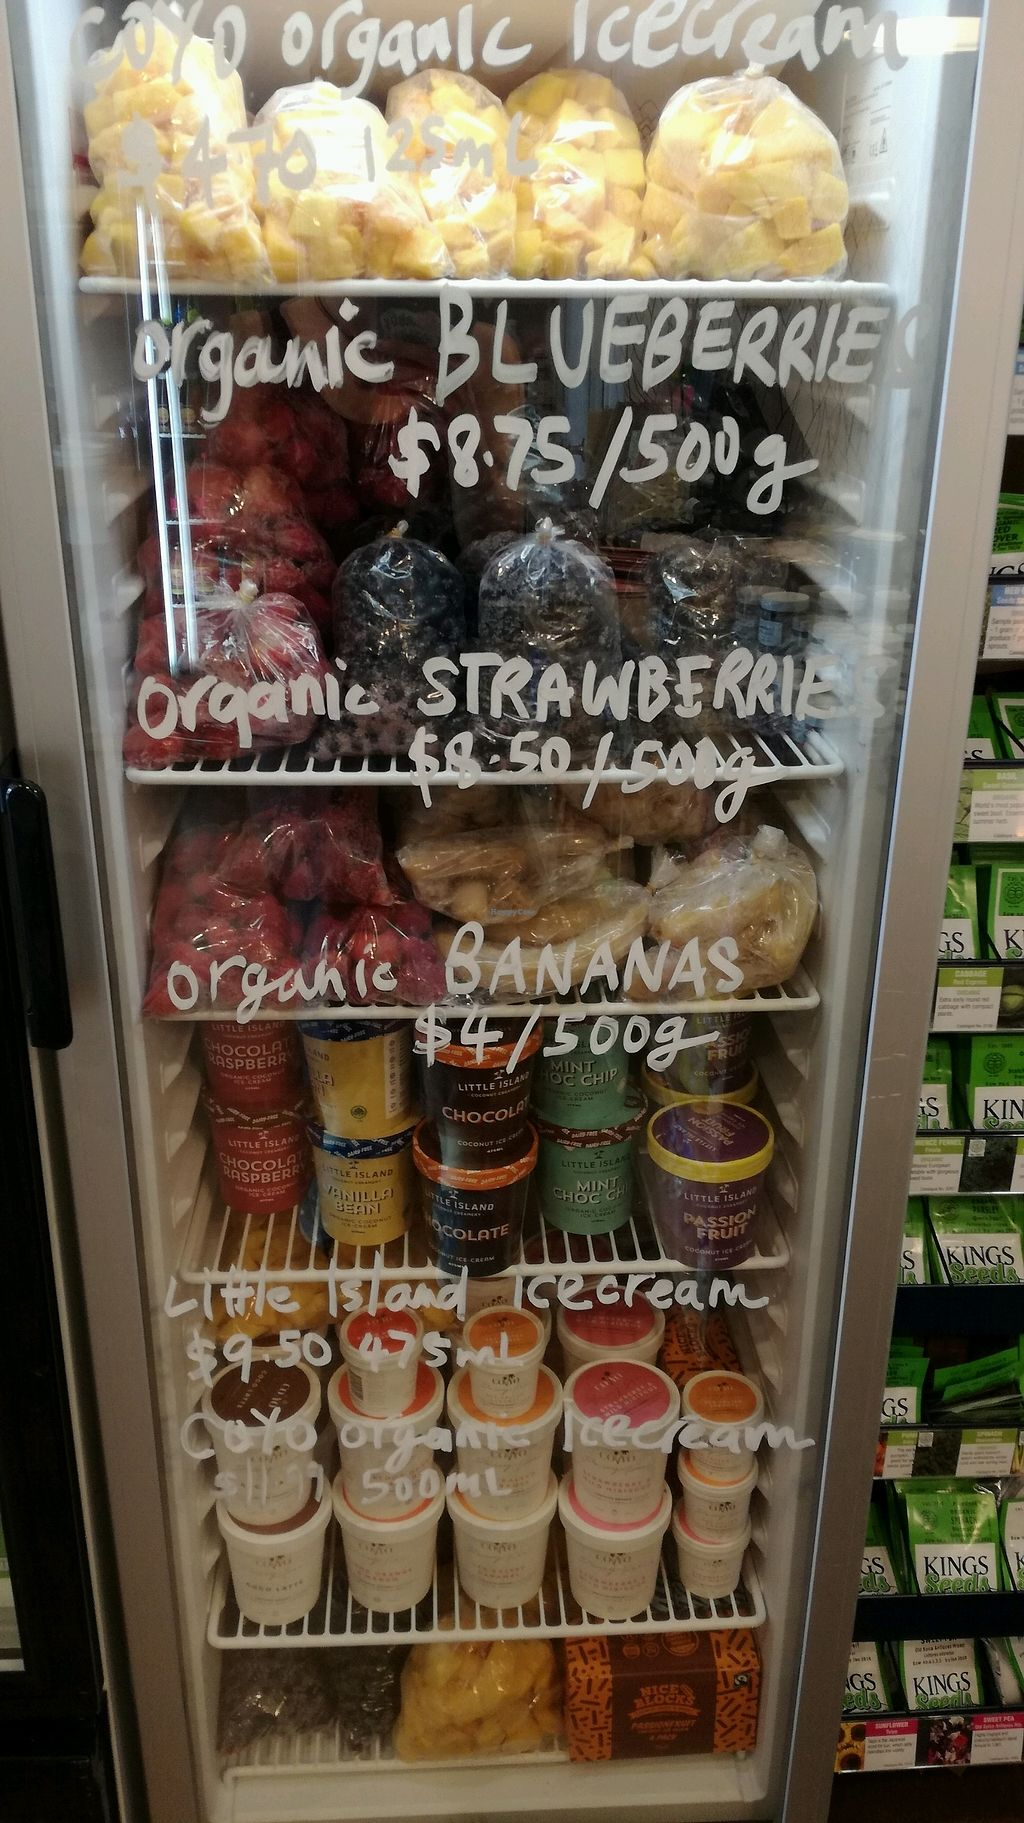 """Photo of Be Organics  by <a href=""""/members/profile/evajelen"""">evajelen</a> <br/>coconut ice cream and frozen fruit! freezer goals!! <br/> January 24, 2018  - <a href='/contact/abuse/image/109841/350250'>Report</a>"""